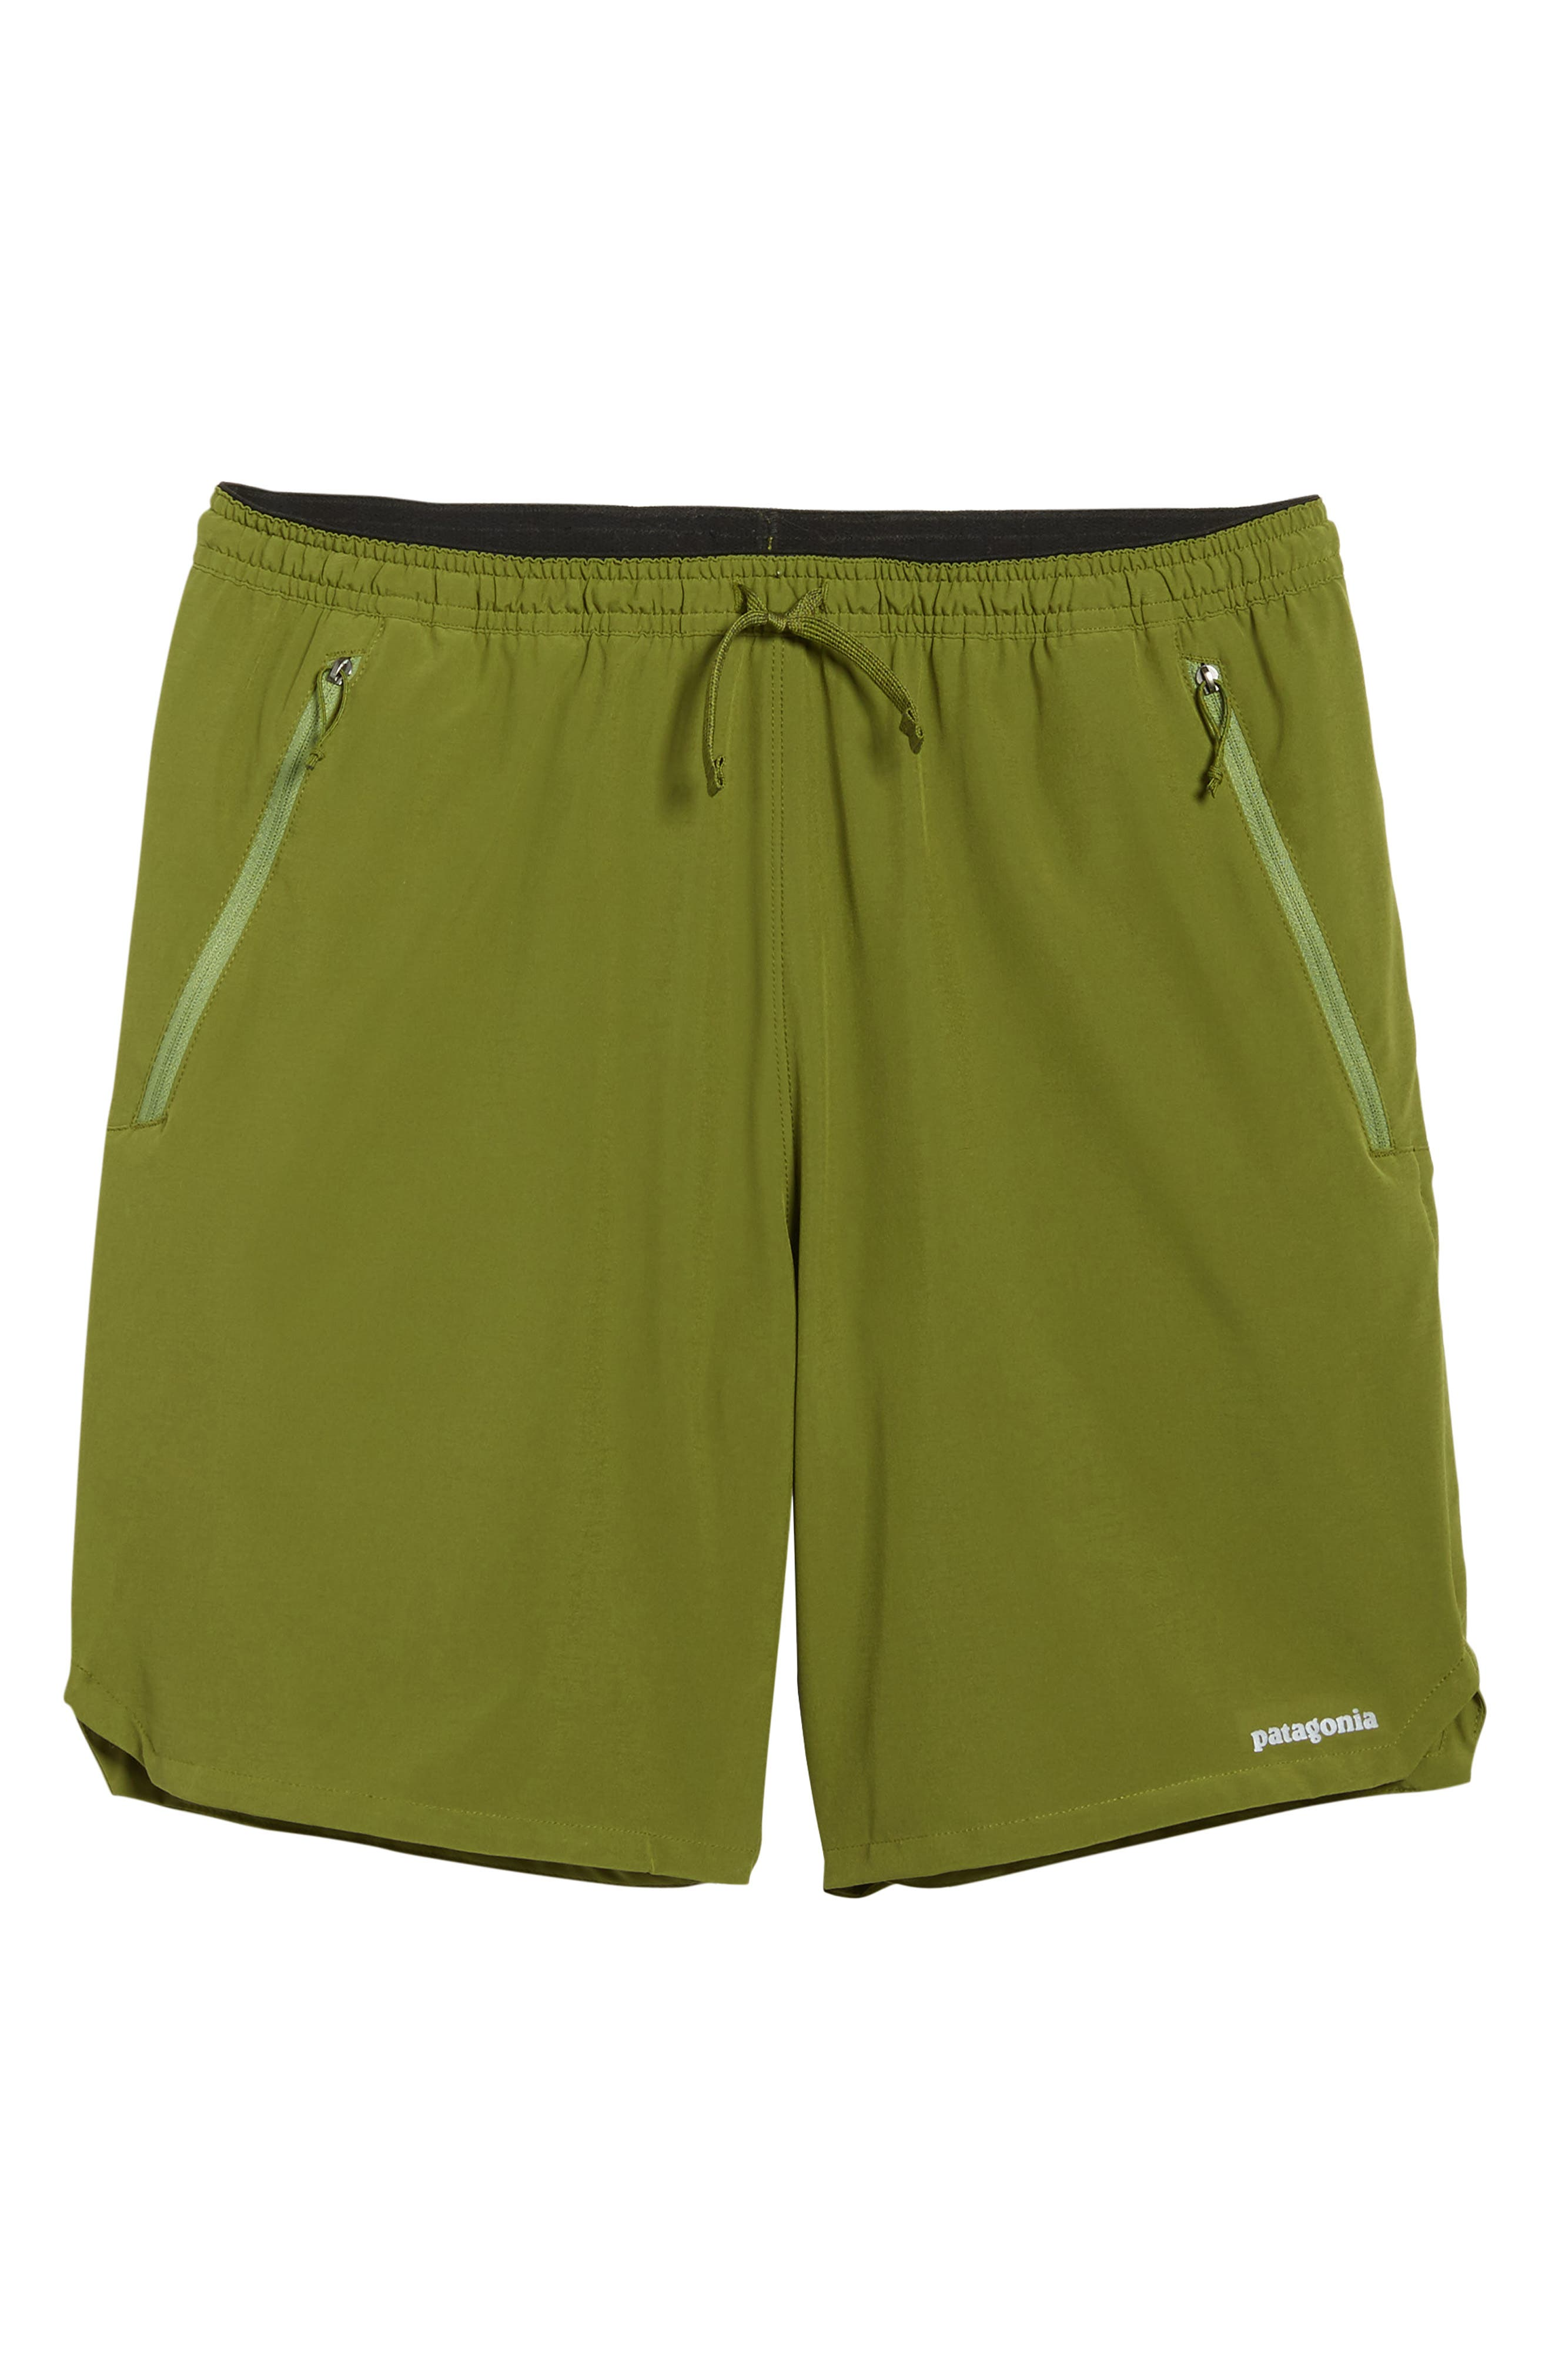 Nine Trails Hiking Shorts,                             Alternate thumbnail 23, color,